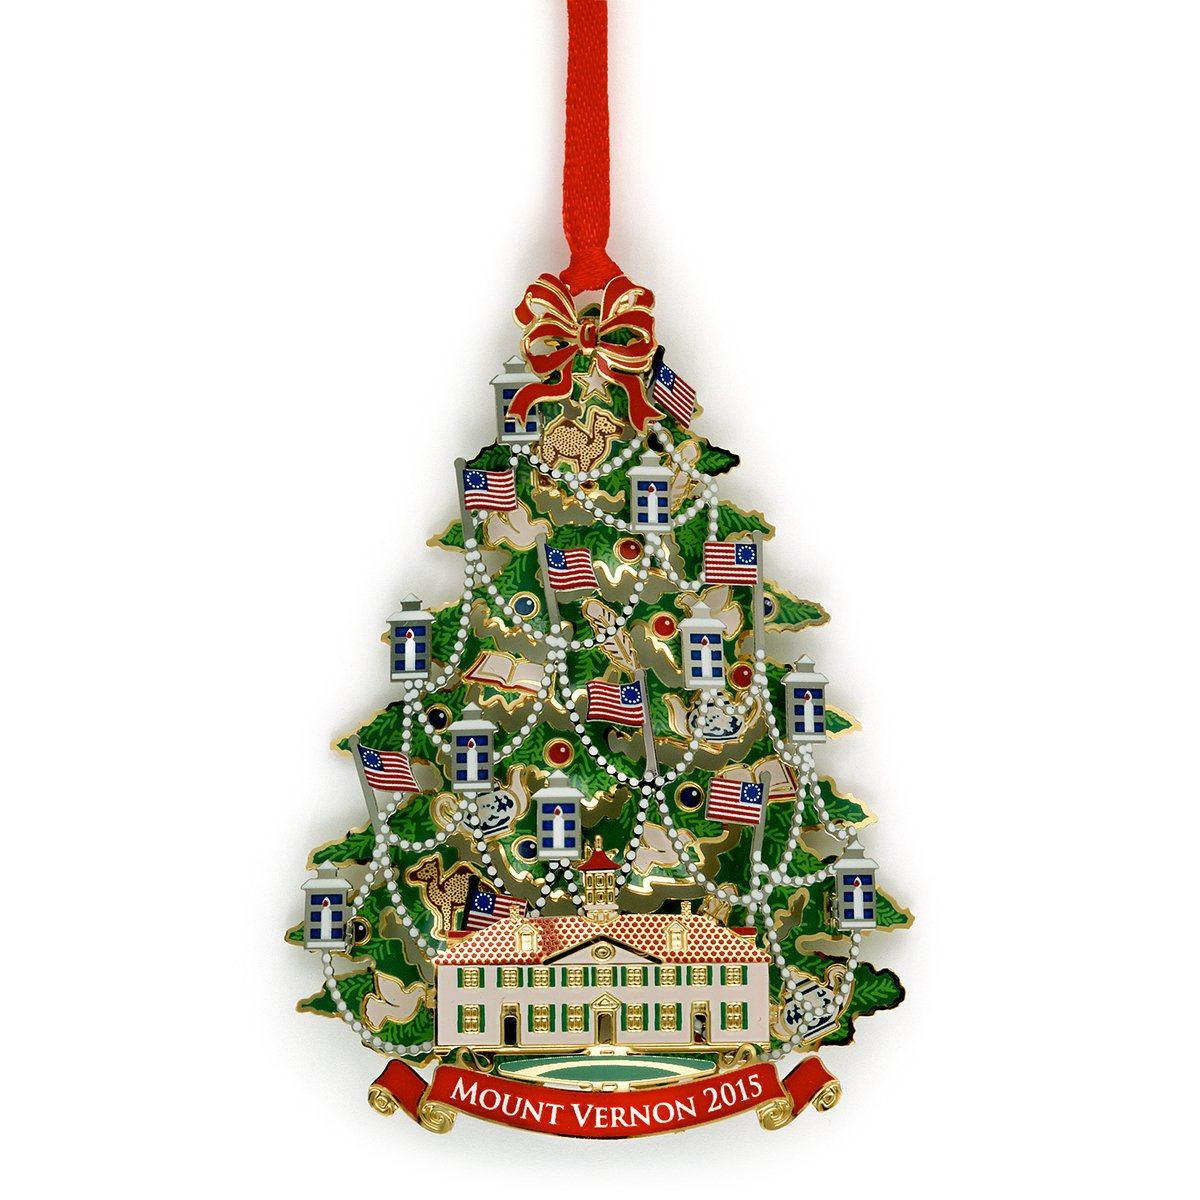 Mount Vernon 2015 Annual Ornament